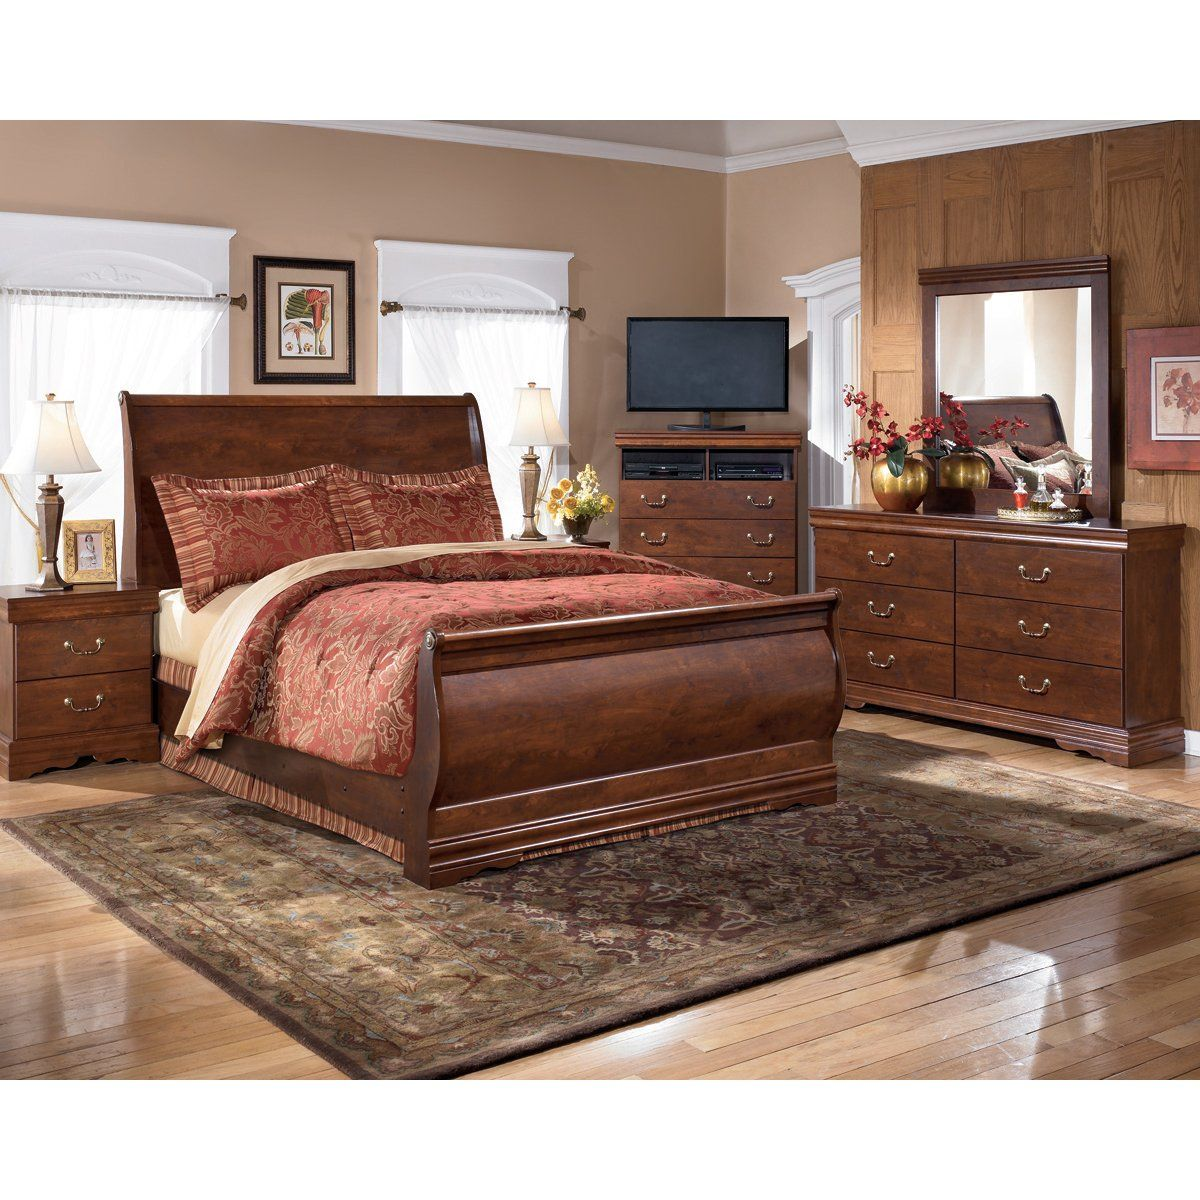 Sleigh Bed Local Landscaping Companies Stores Sofa Recliner Queen K Home  Design - Sleigh Bed Local Landscaping Companies Stores Sofa Recliner Queen K